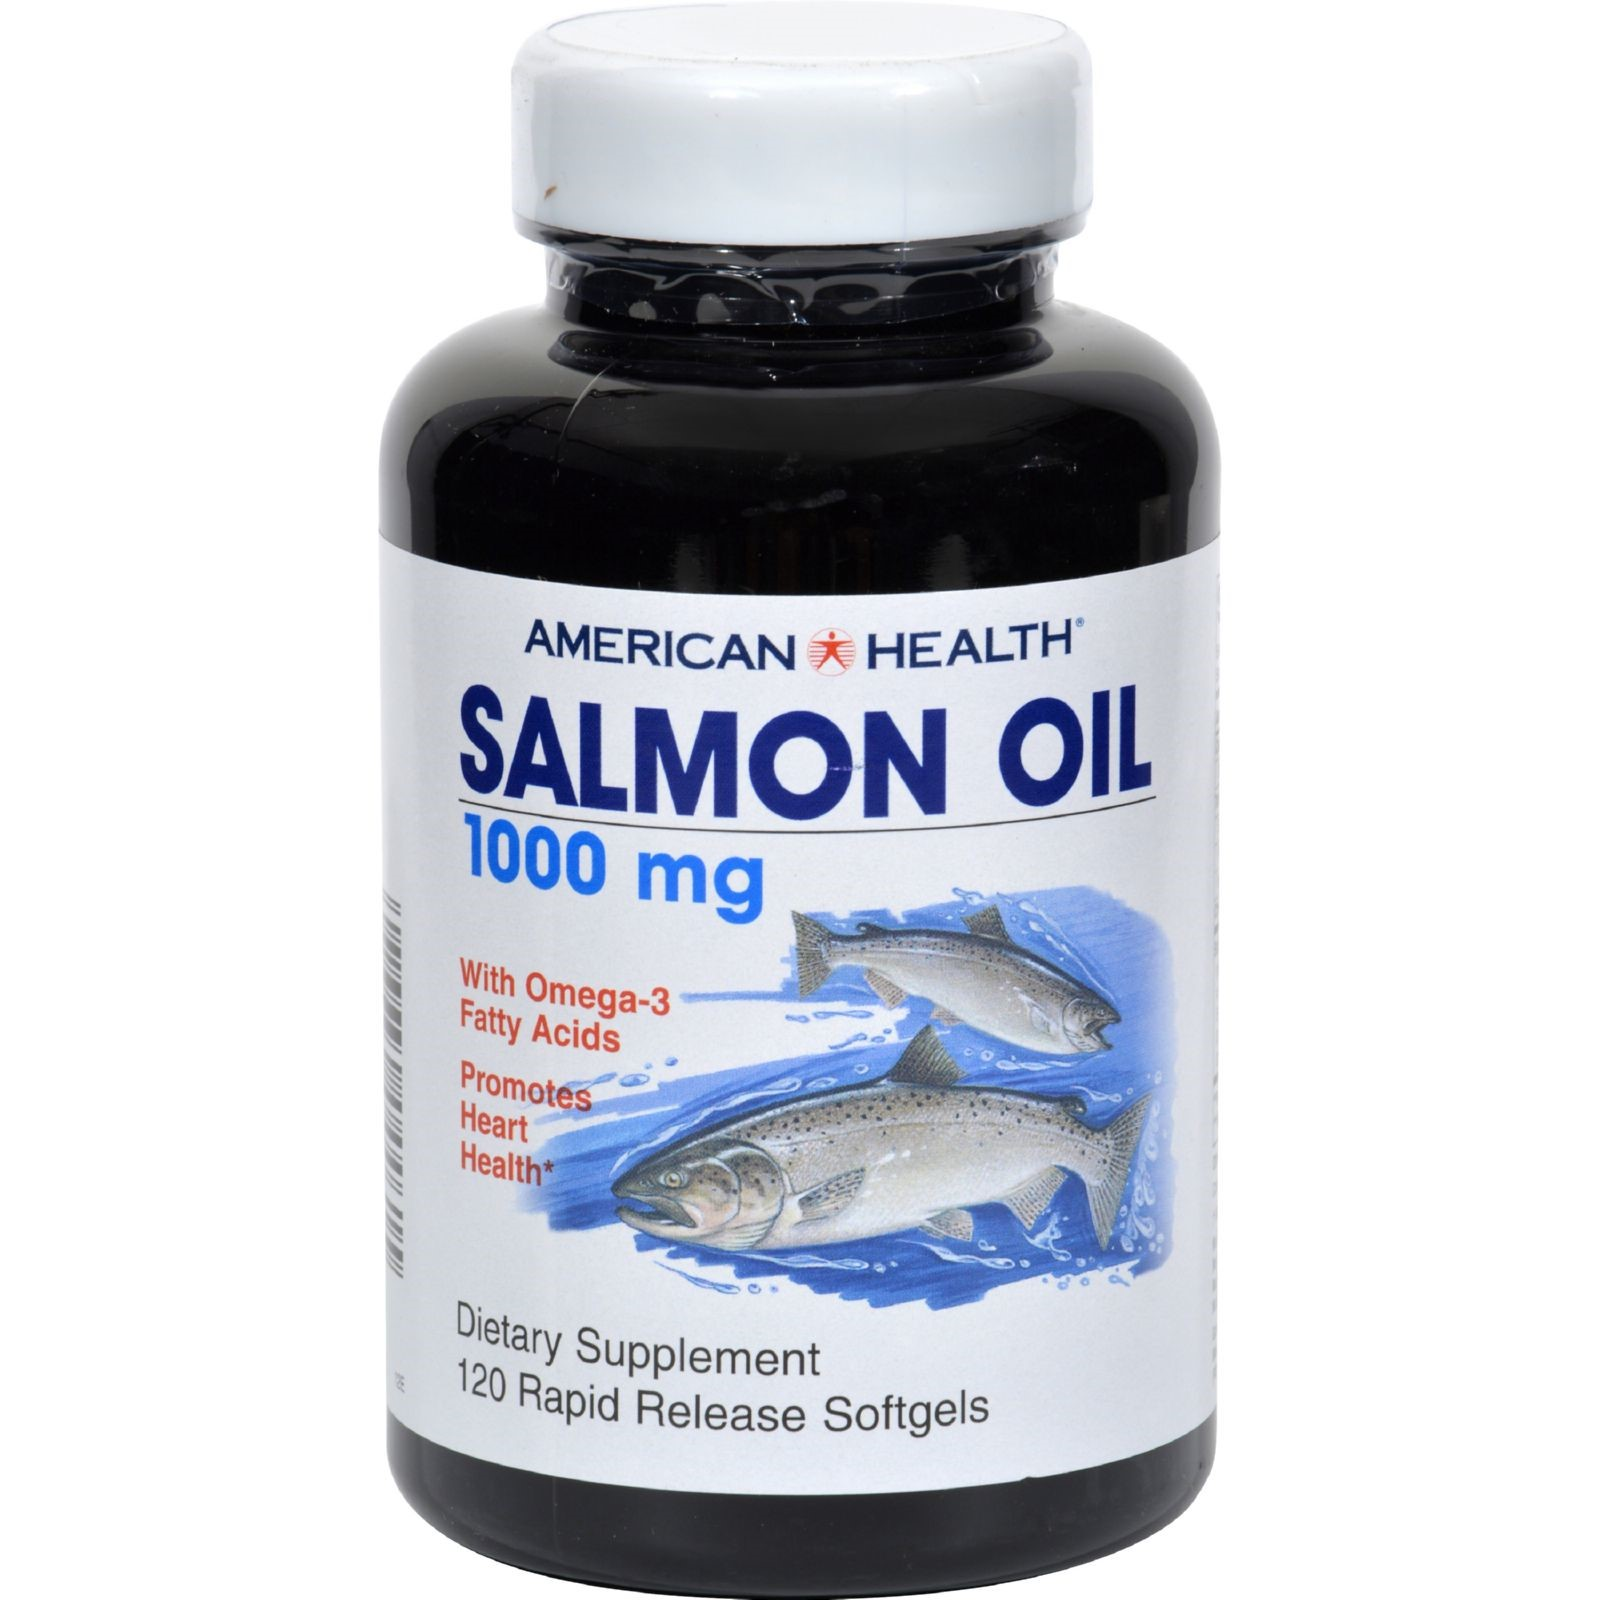 American health salmon oil 1000mg, 120 ct